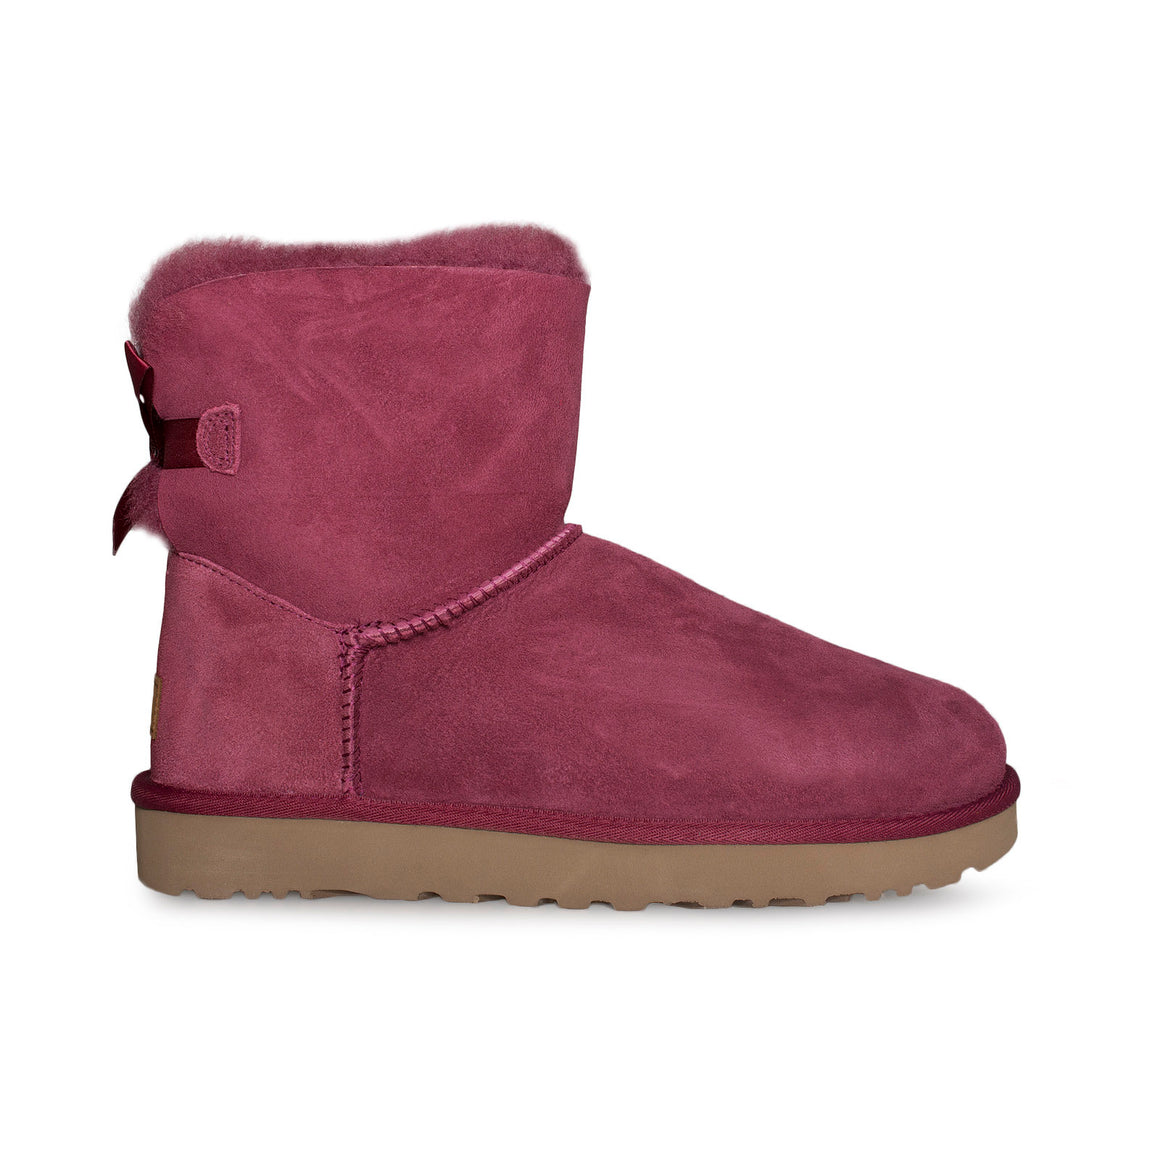 UGG Mini Bailey Bow II Garnet Boots - Women's